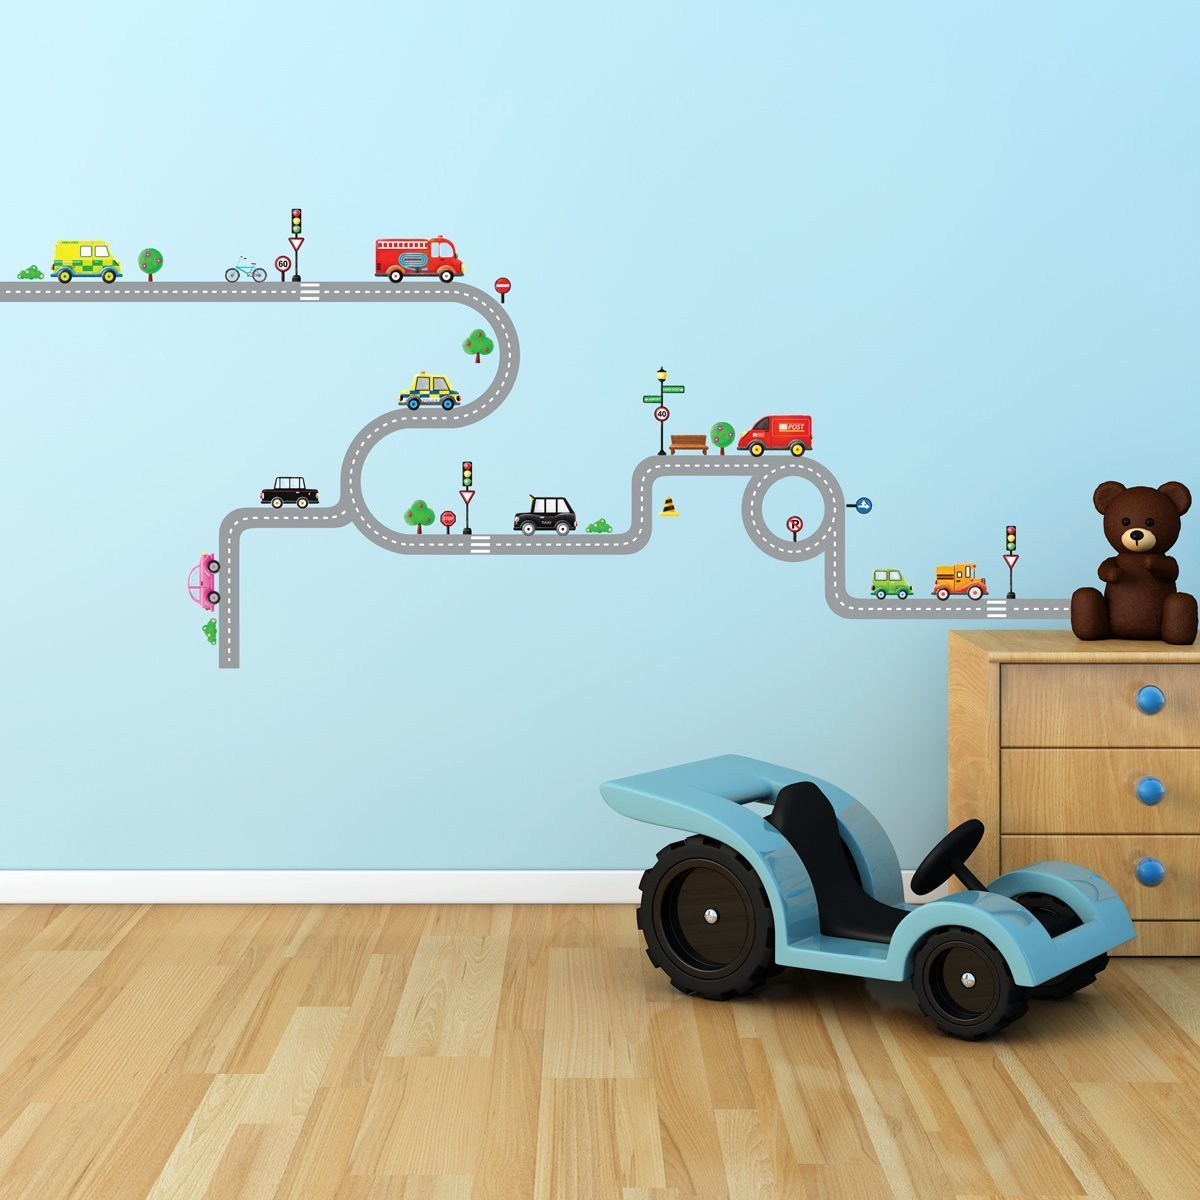 Decowall DW 1204 10 Transports And Roads Kids Wall Stickers Wall Decals  Peel And Stick Removable Wall Stickers For Kids Nursery Bedroom Living  Room: ...